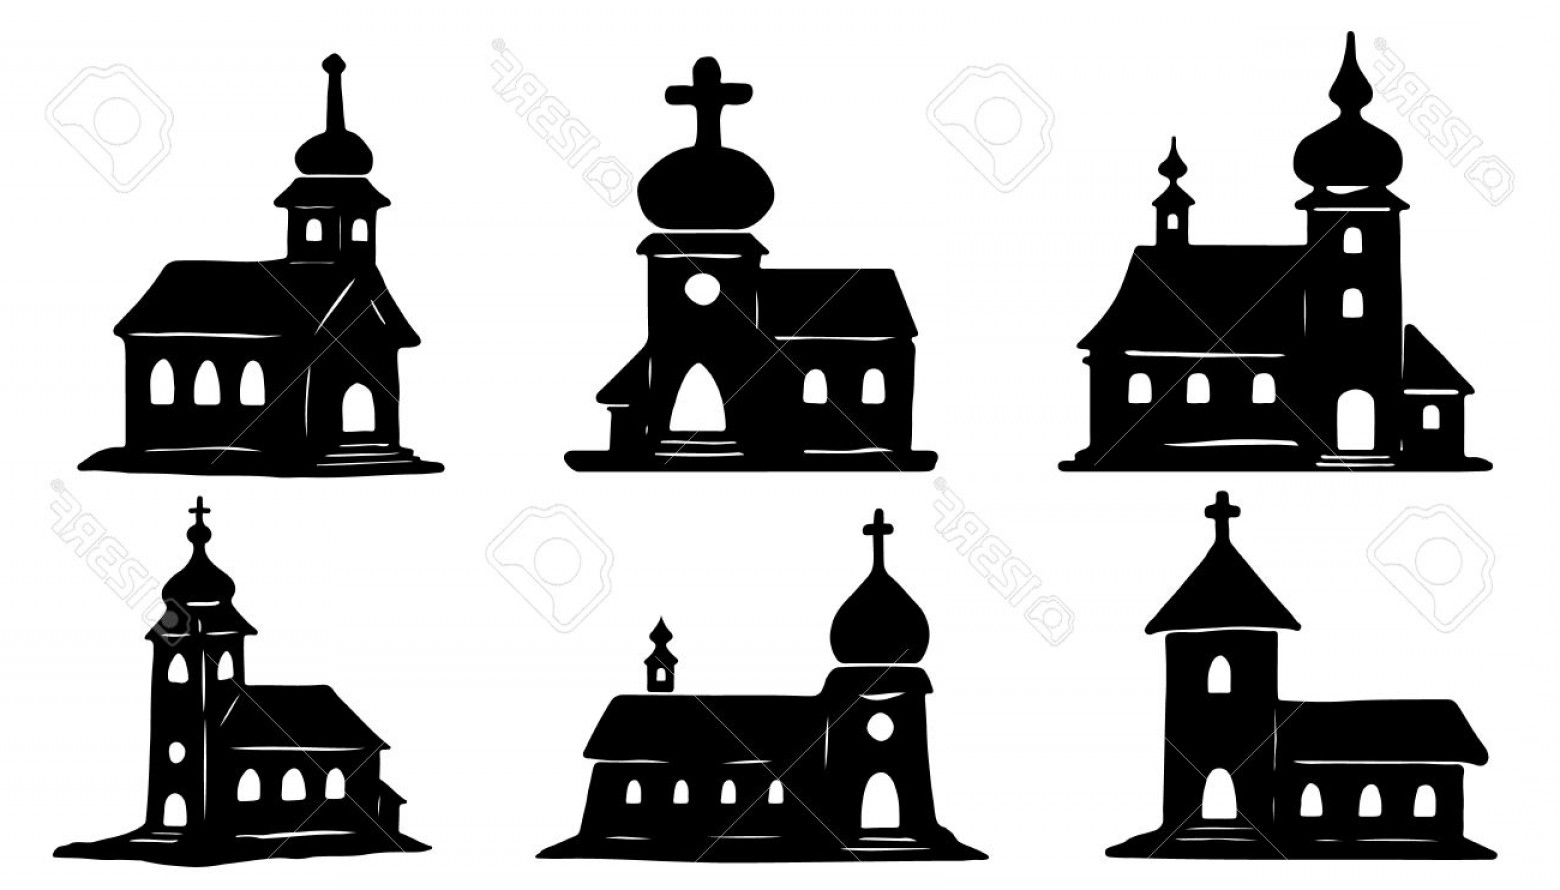 Church Silhouette Vector: Photostock Vector Church Silhouettes On The White Background